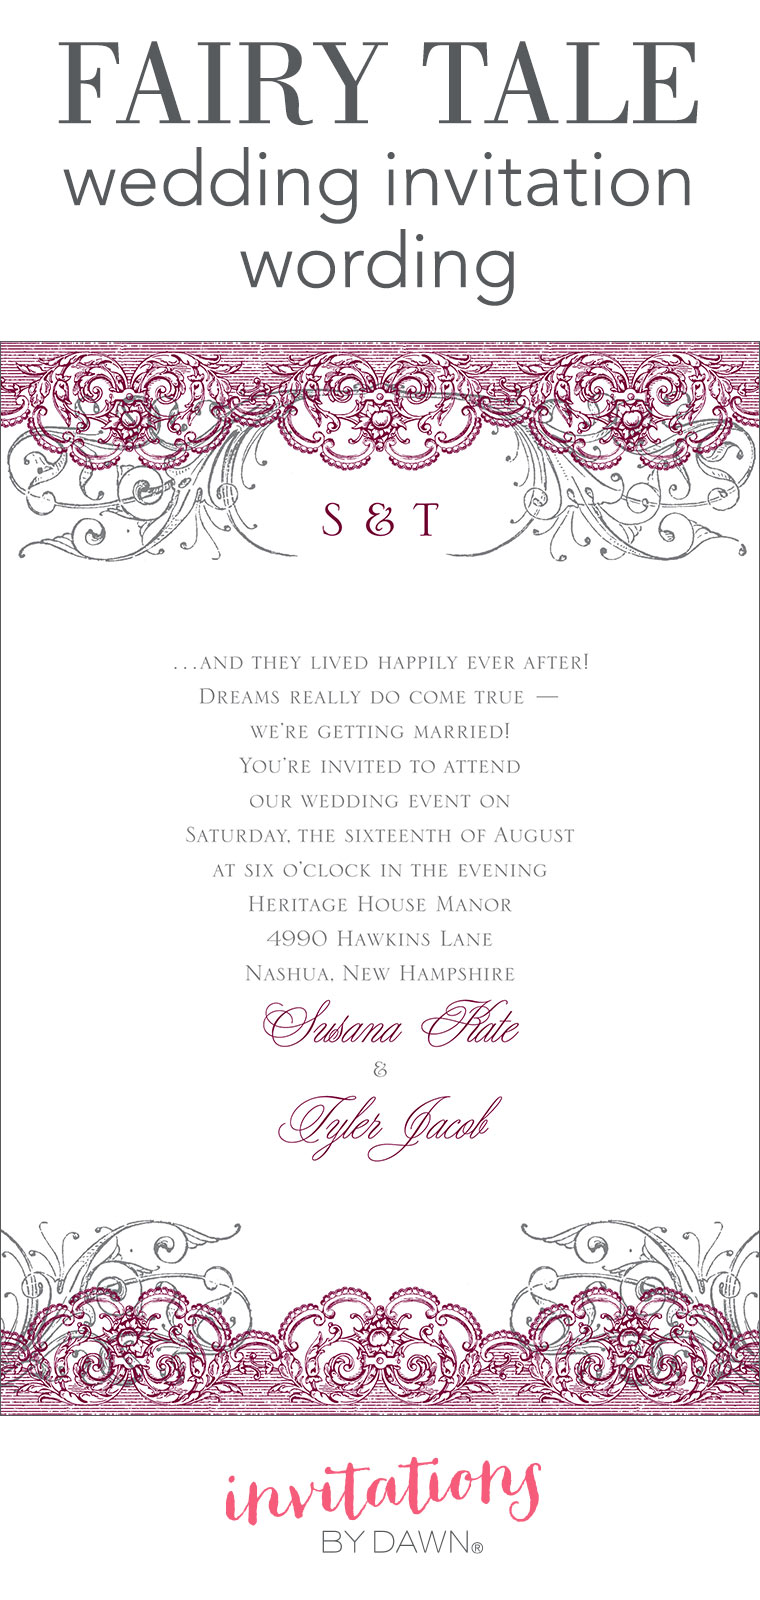 Fairy tale wedding invitation wording invitations by dawn stopboris